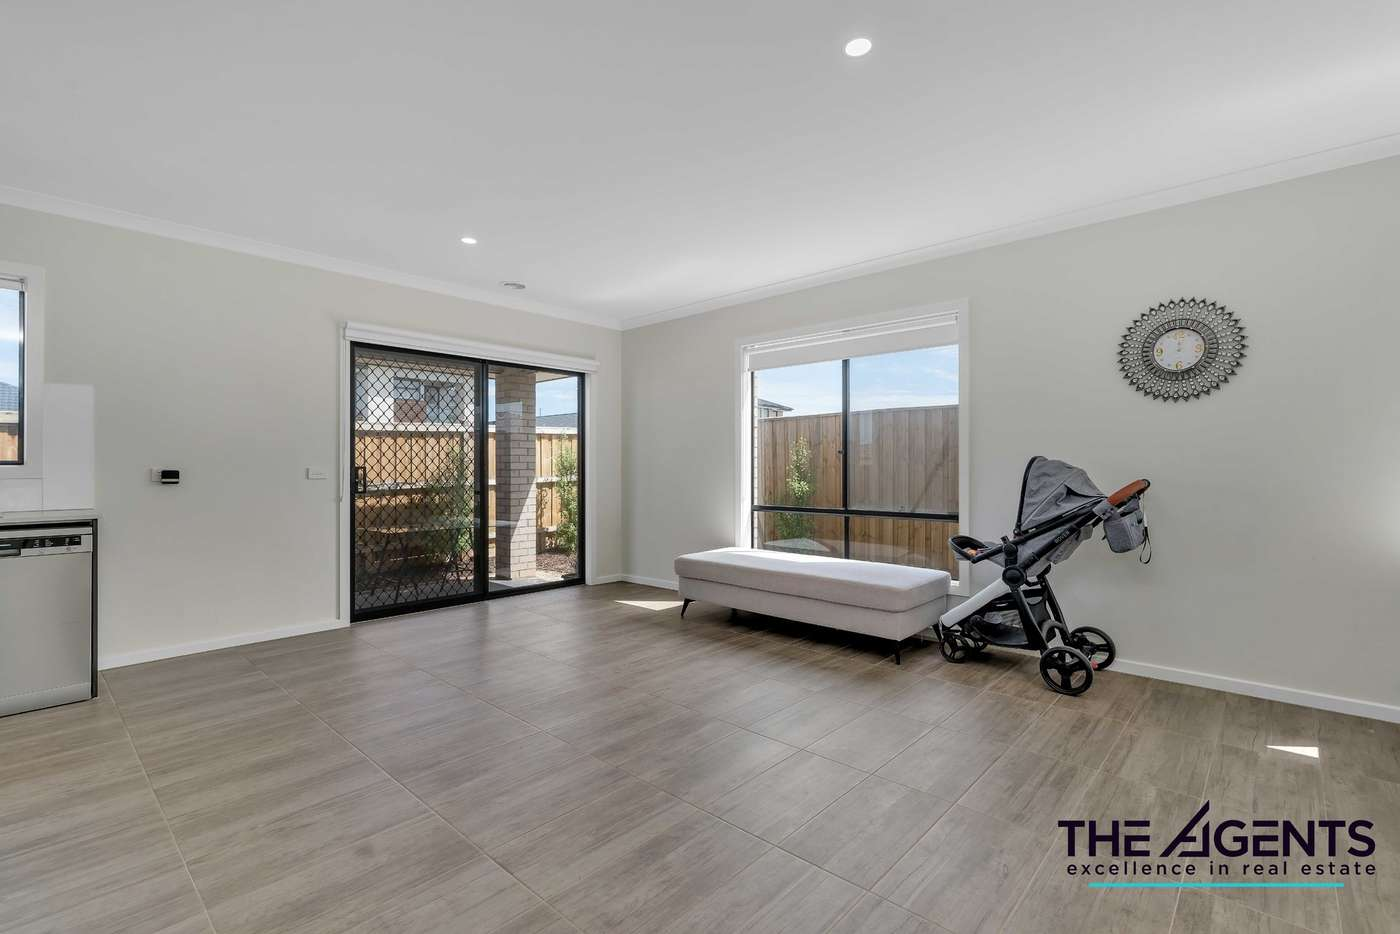 Seventh view of Homely house listing, 57 Brightvale Bvd, Wyndham Vale VIC 3024